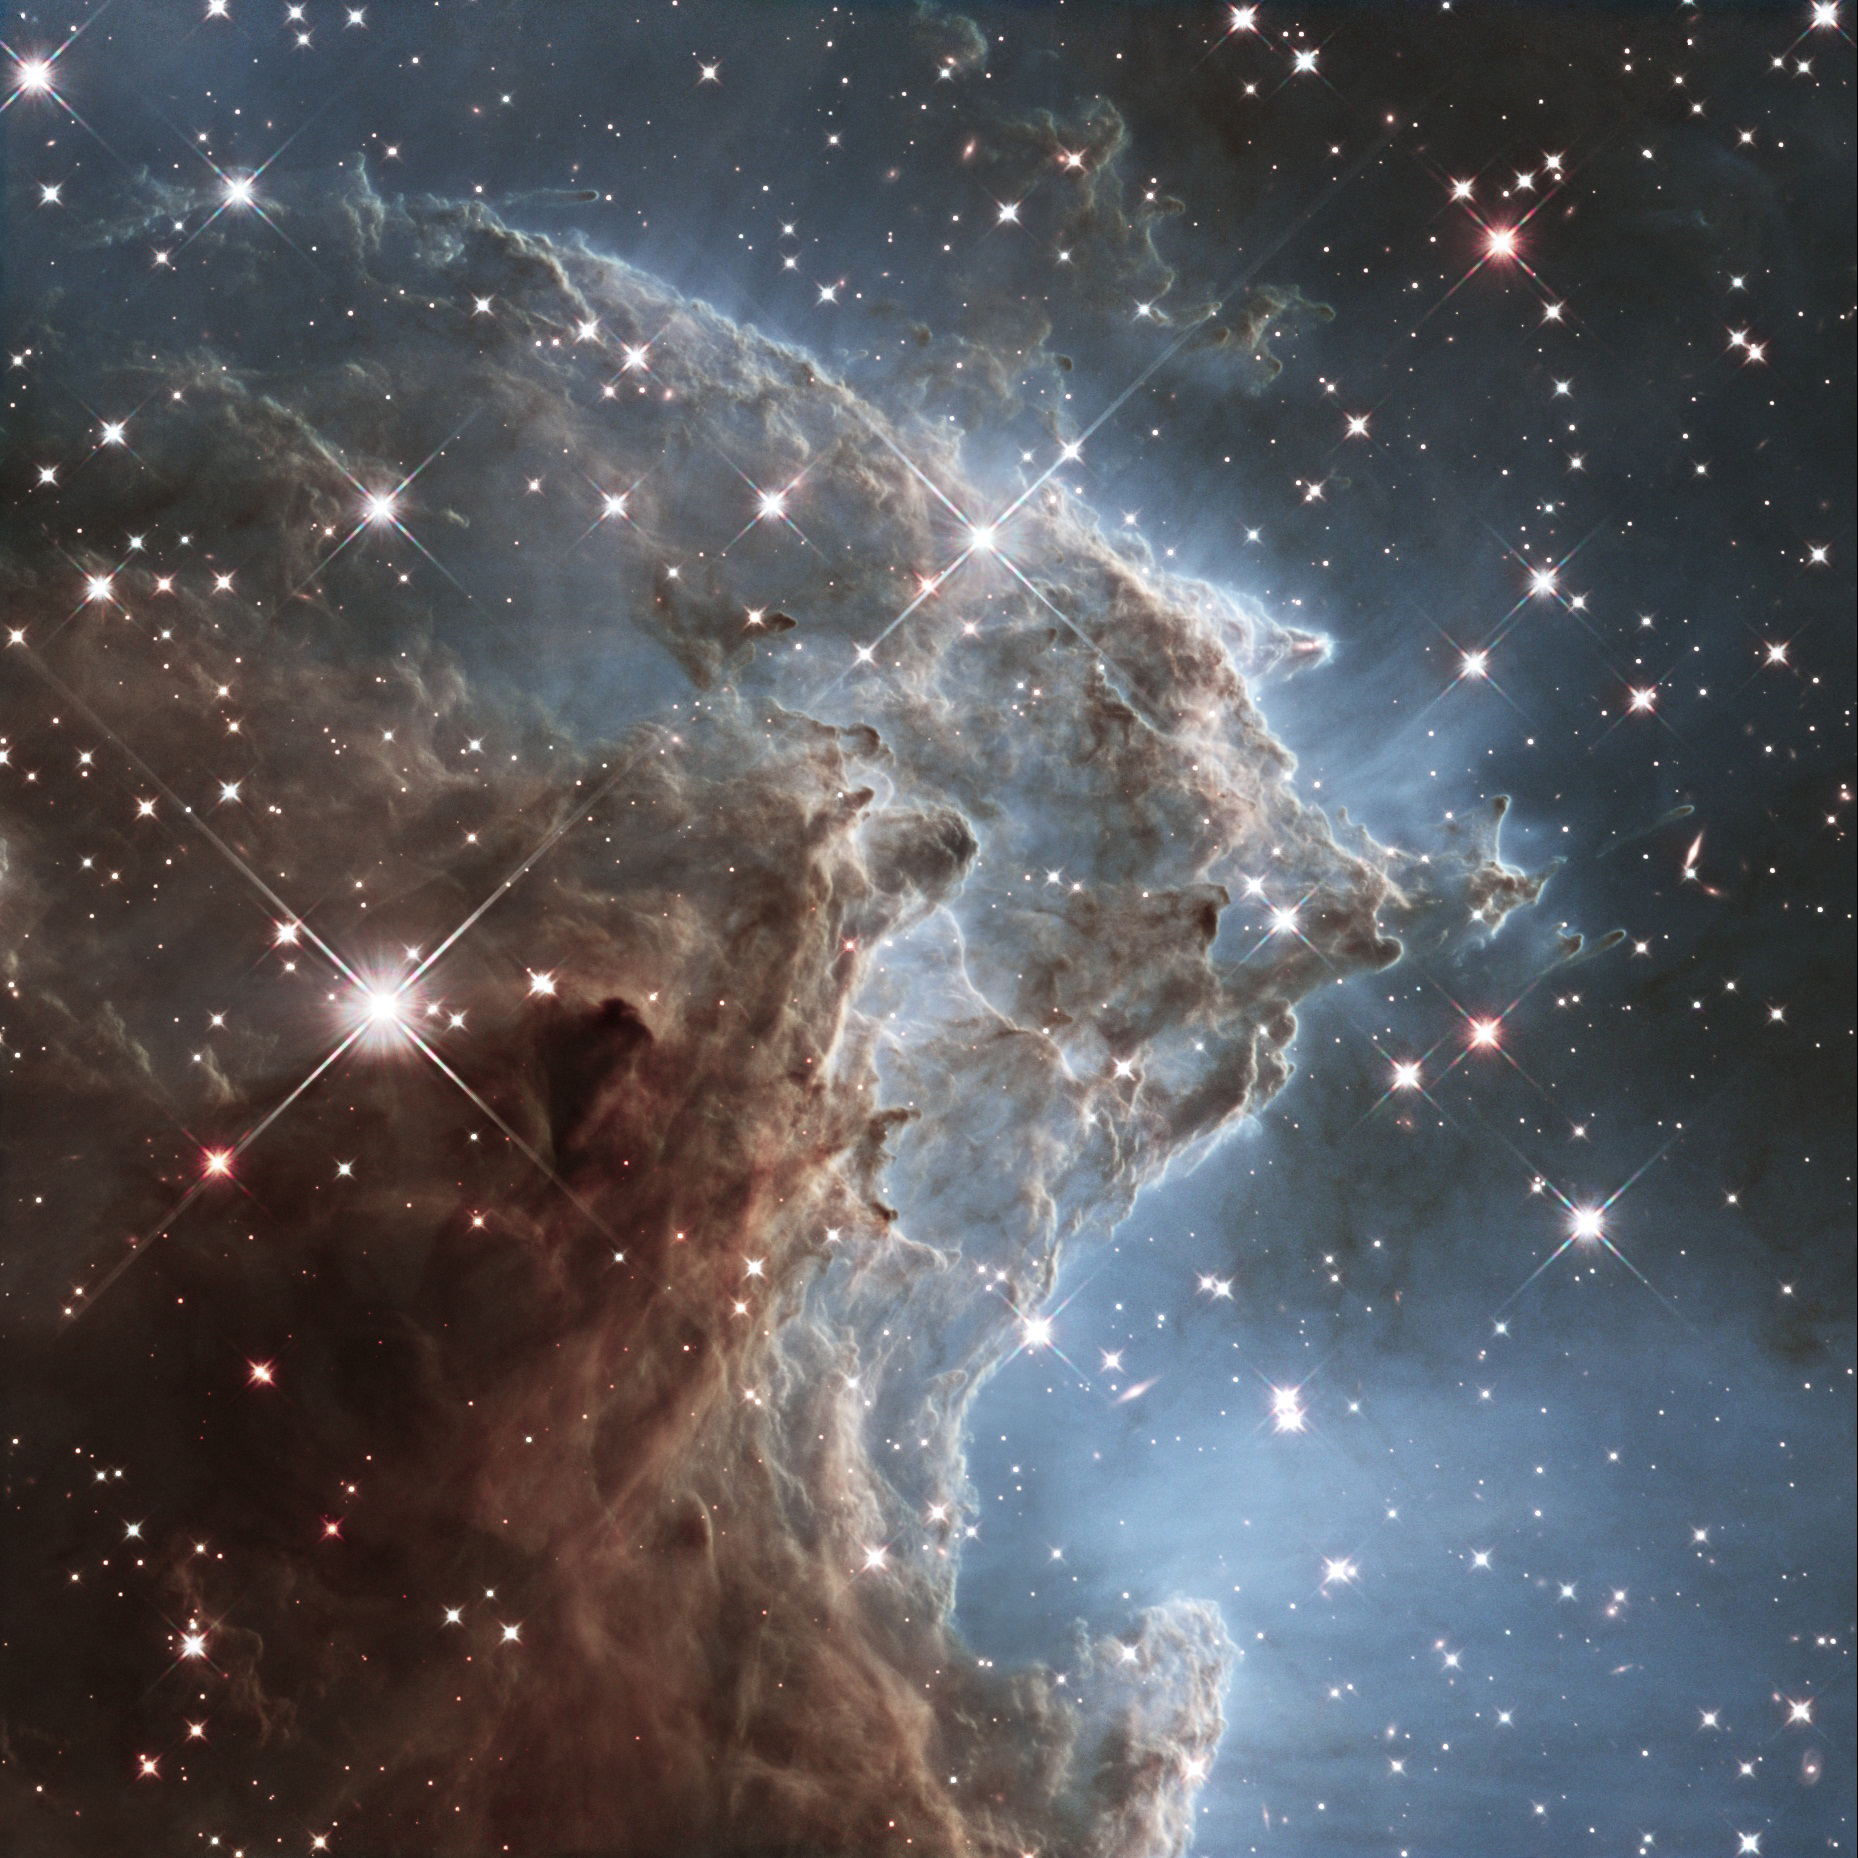 A view of the Monkey Head Nebula, released on March 17, 2014.  Otherwise known as NGC 2174, the nebula is a cloud of gas and dust that lies about 6400 light-years away in the constellation of Orion. Nebulas like this one are popular targets for Hubble, their colourful plumes of gas and fiery bright stars create ethereally beautiful pictures.